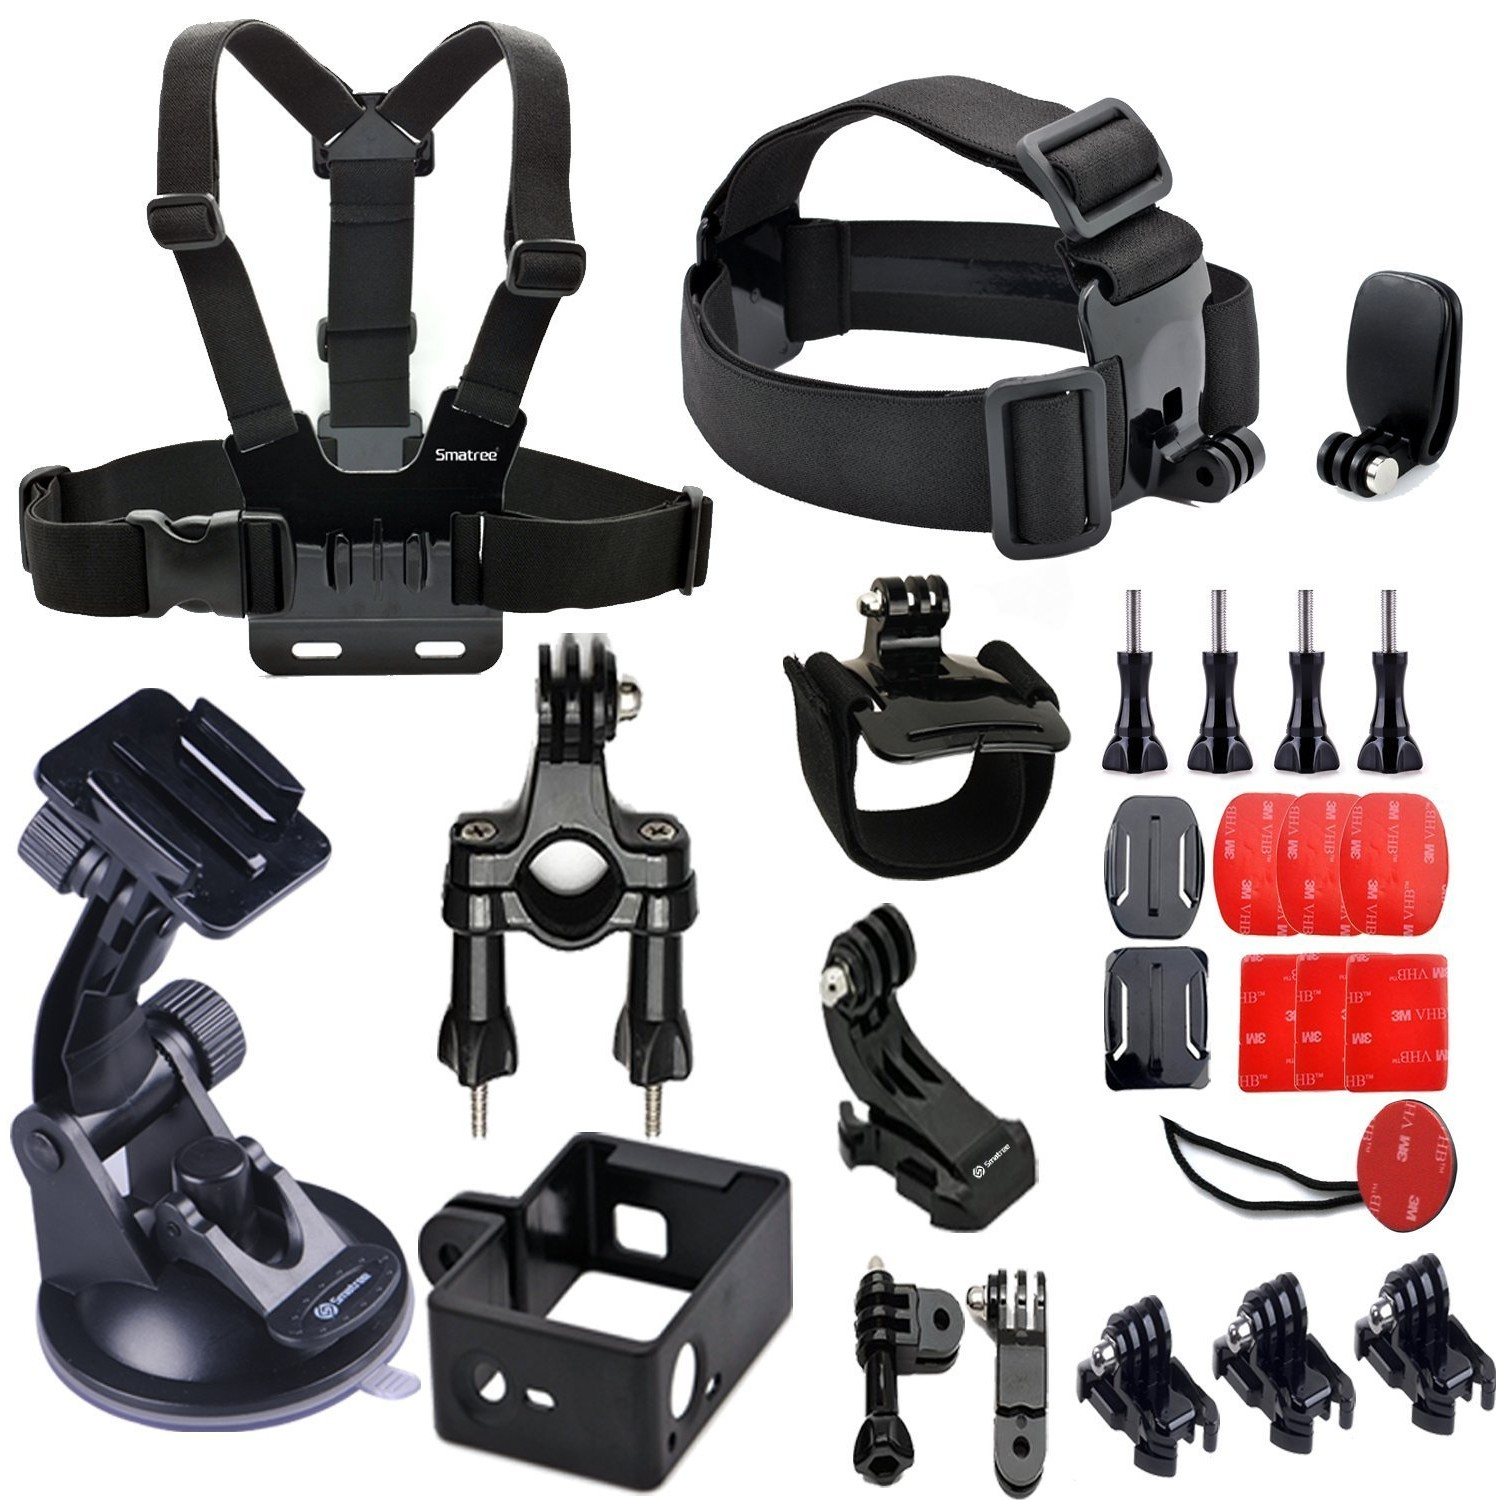 Smatree 25-in-1 Gopro Accessories  71UcqSM7aML._SL1500_